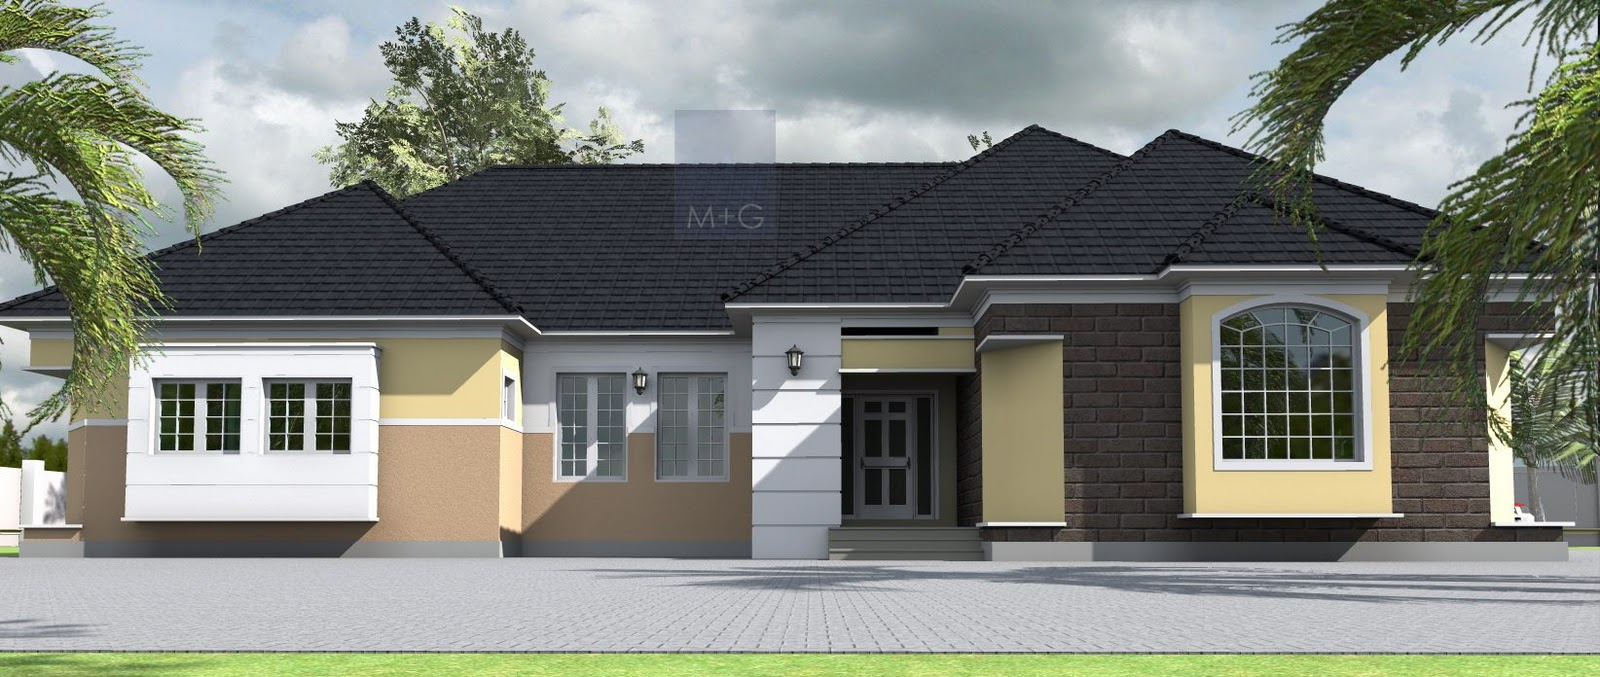 Modern bungalow design in nigeria modern house Four bedroom bungalow plan